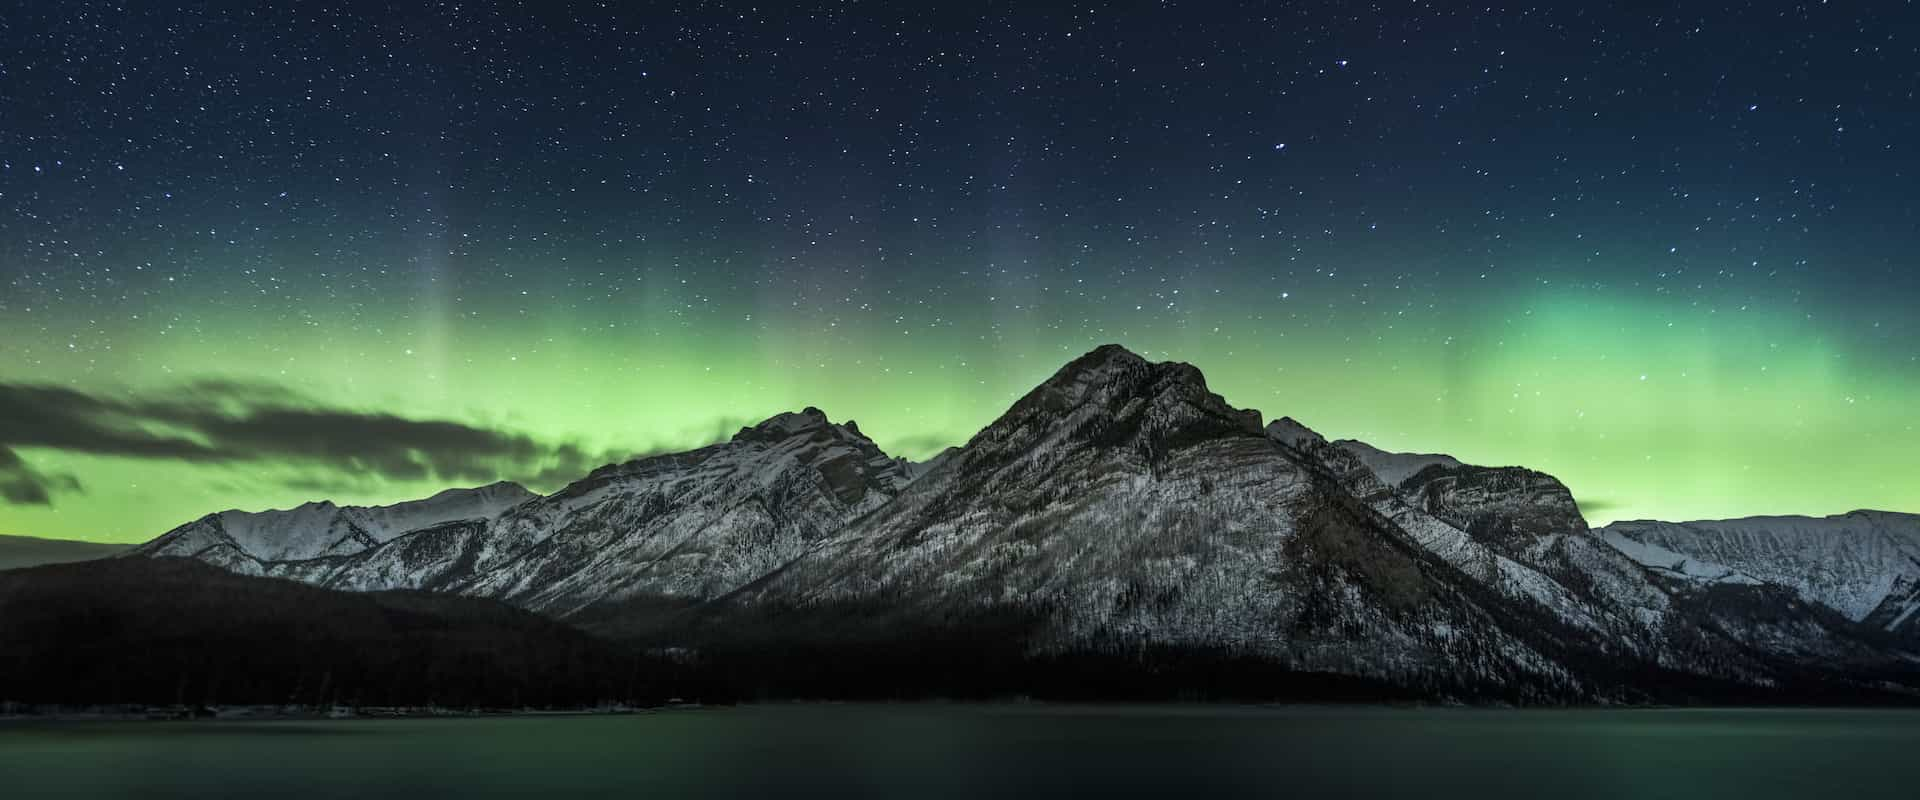 Northern lights in Banff National Park